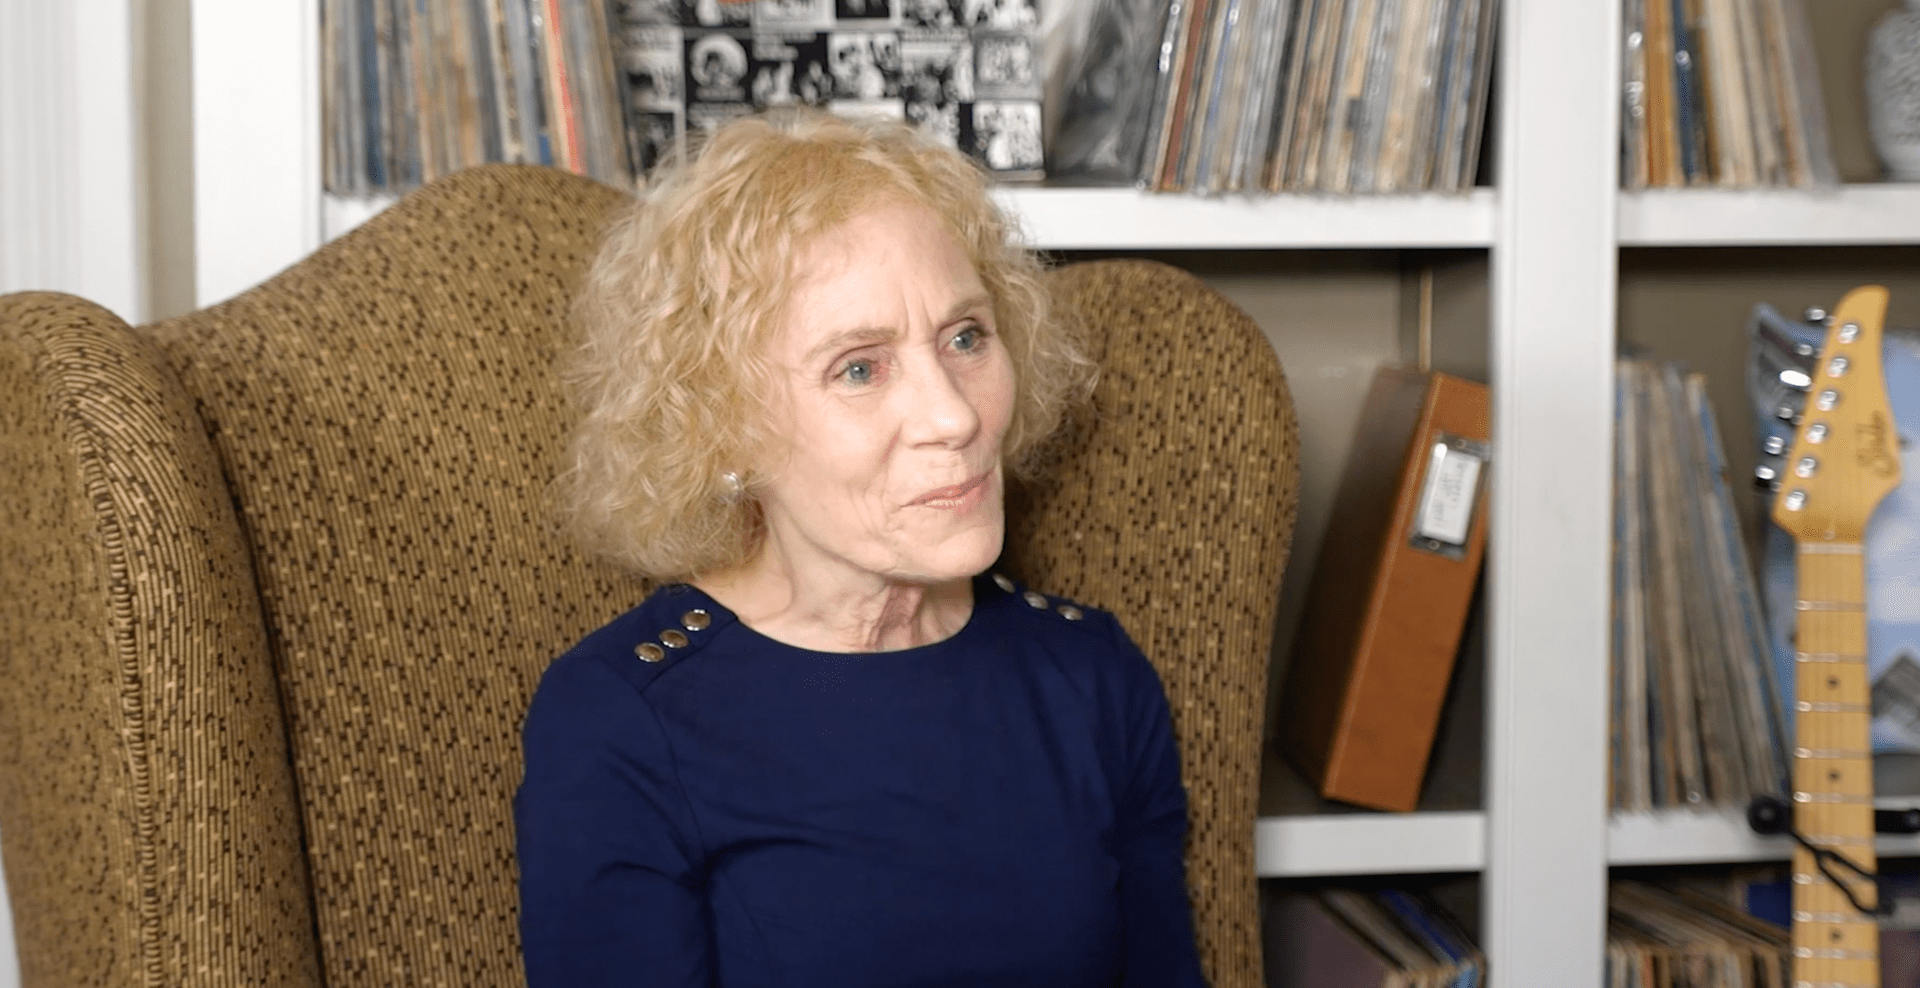 Music Publishing: Interview with Nancy Peacock of Washington Street Publishing